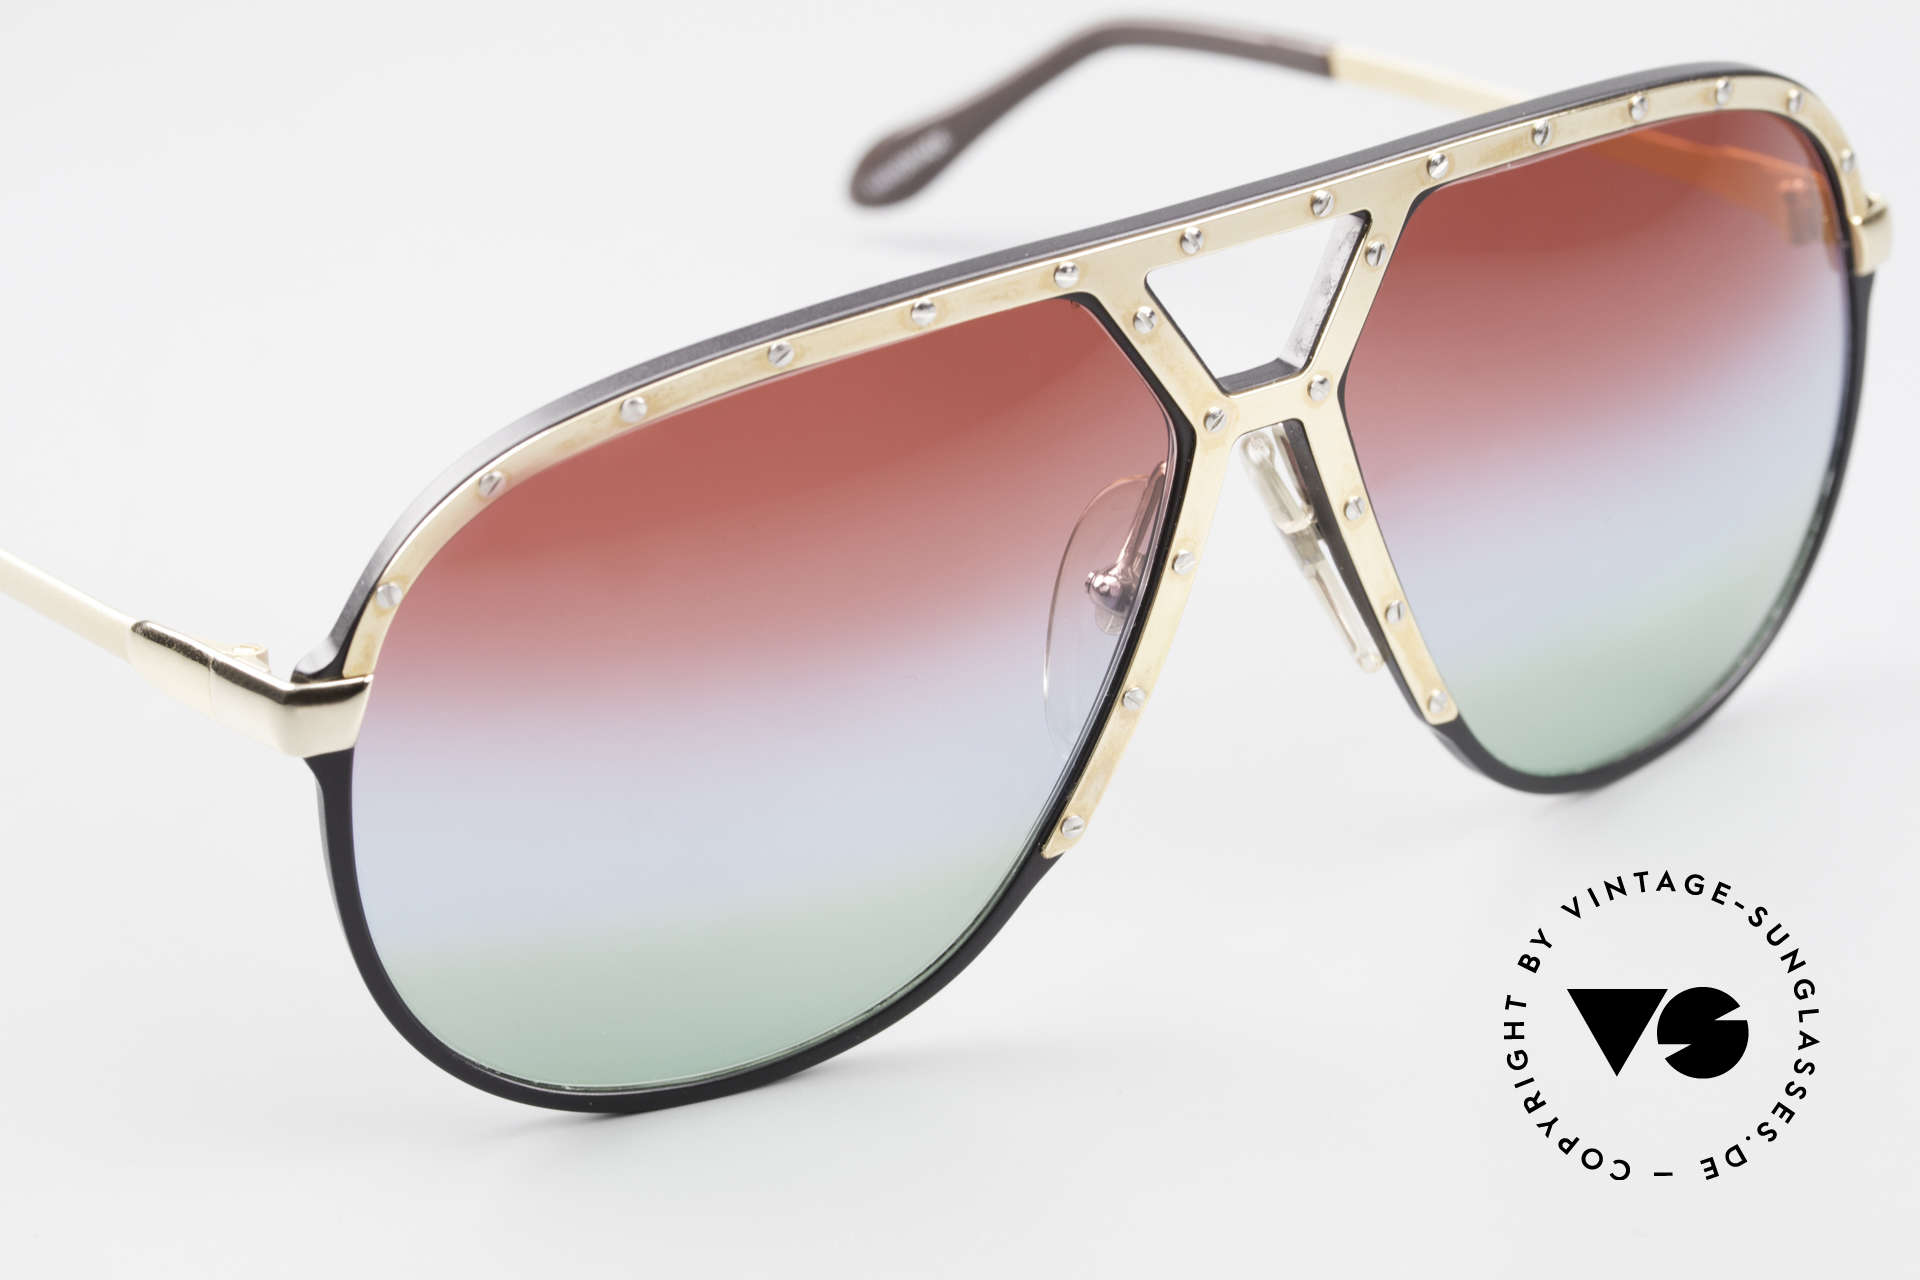 Alpina M1 Customized 80's Sunglasses, unworn collector's item comes with a Porsche case, Made for Men